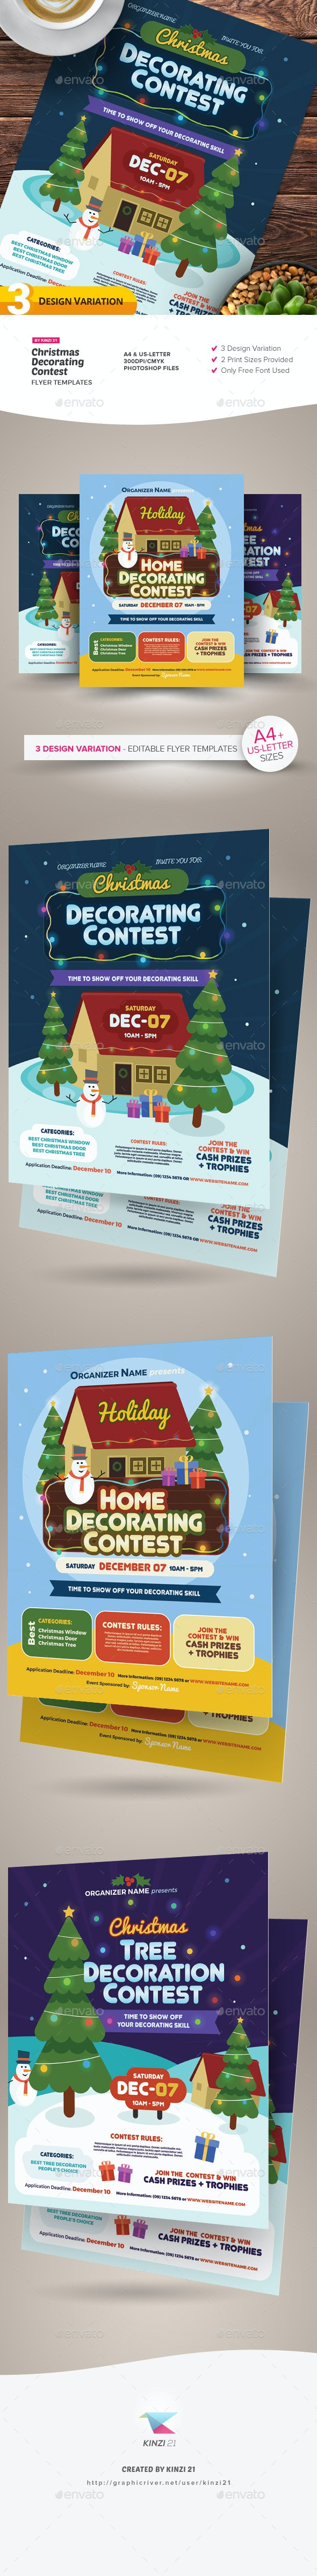 Christmas Decorating Contest Flyer Templates - Holidays Events